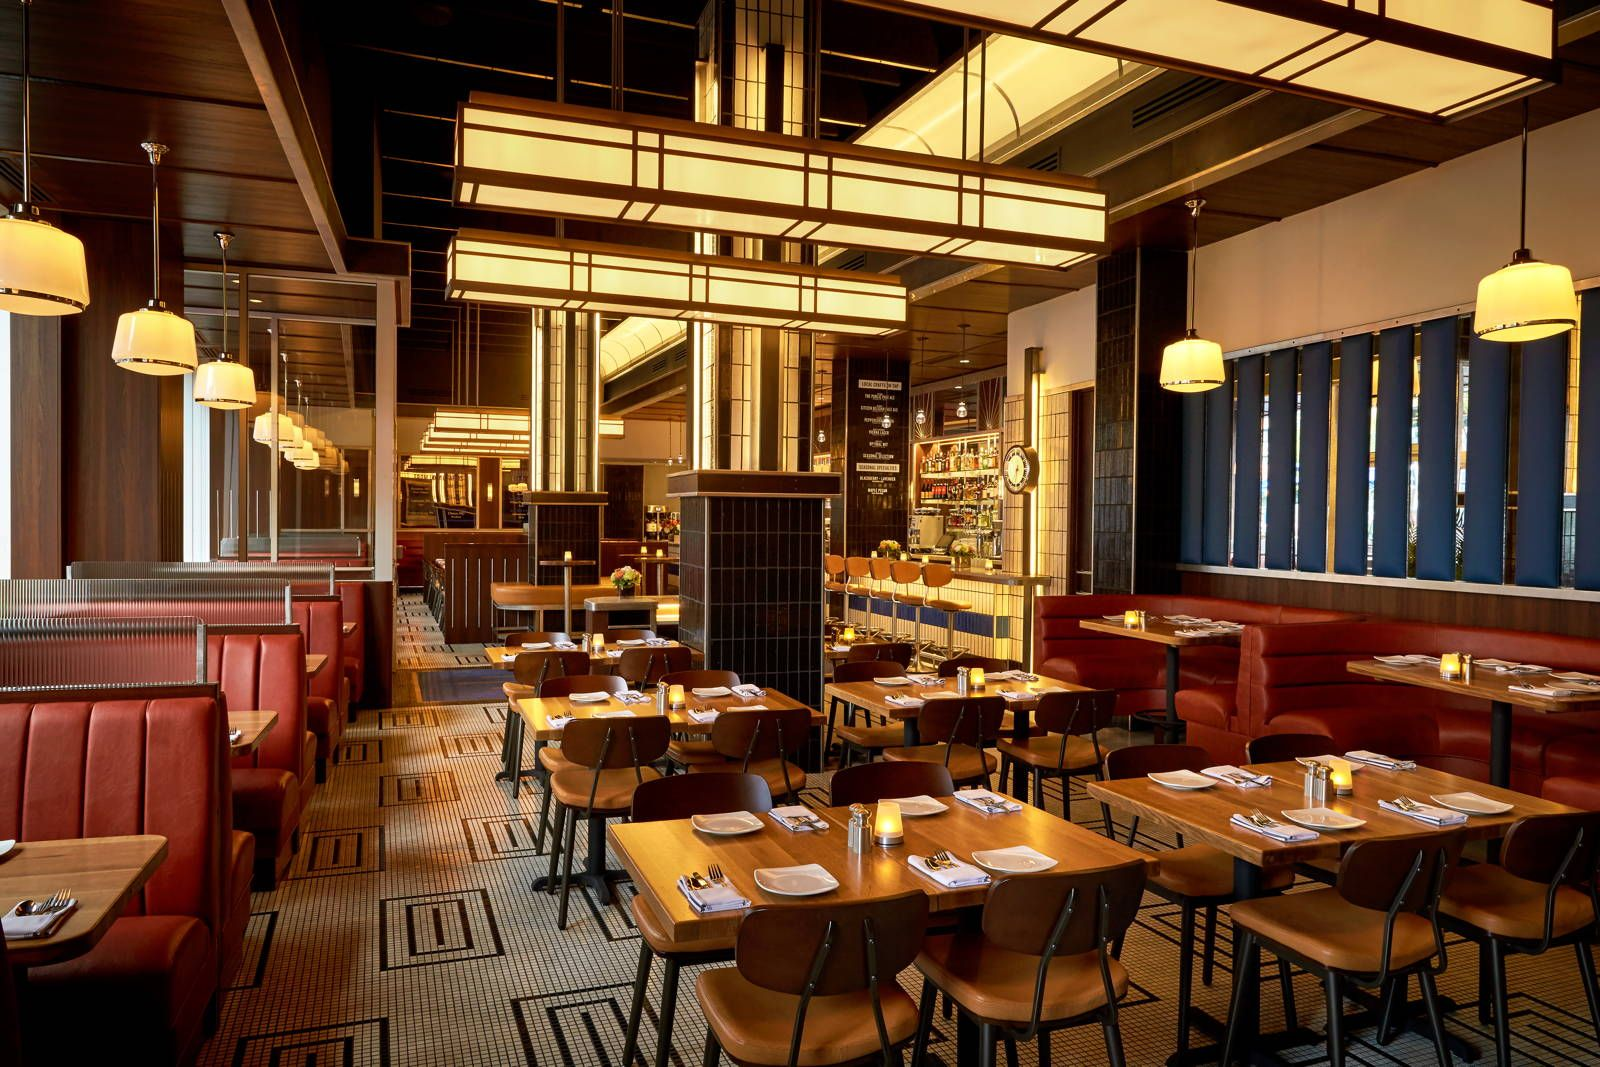 silver, an american brasserie, is an upscale, urban brand